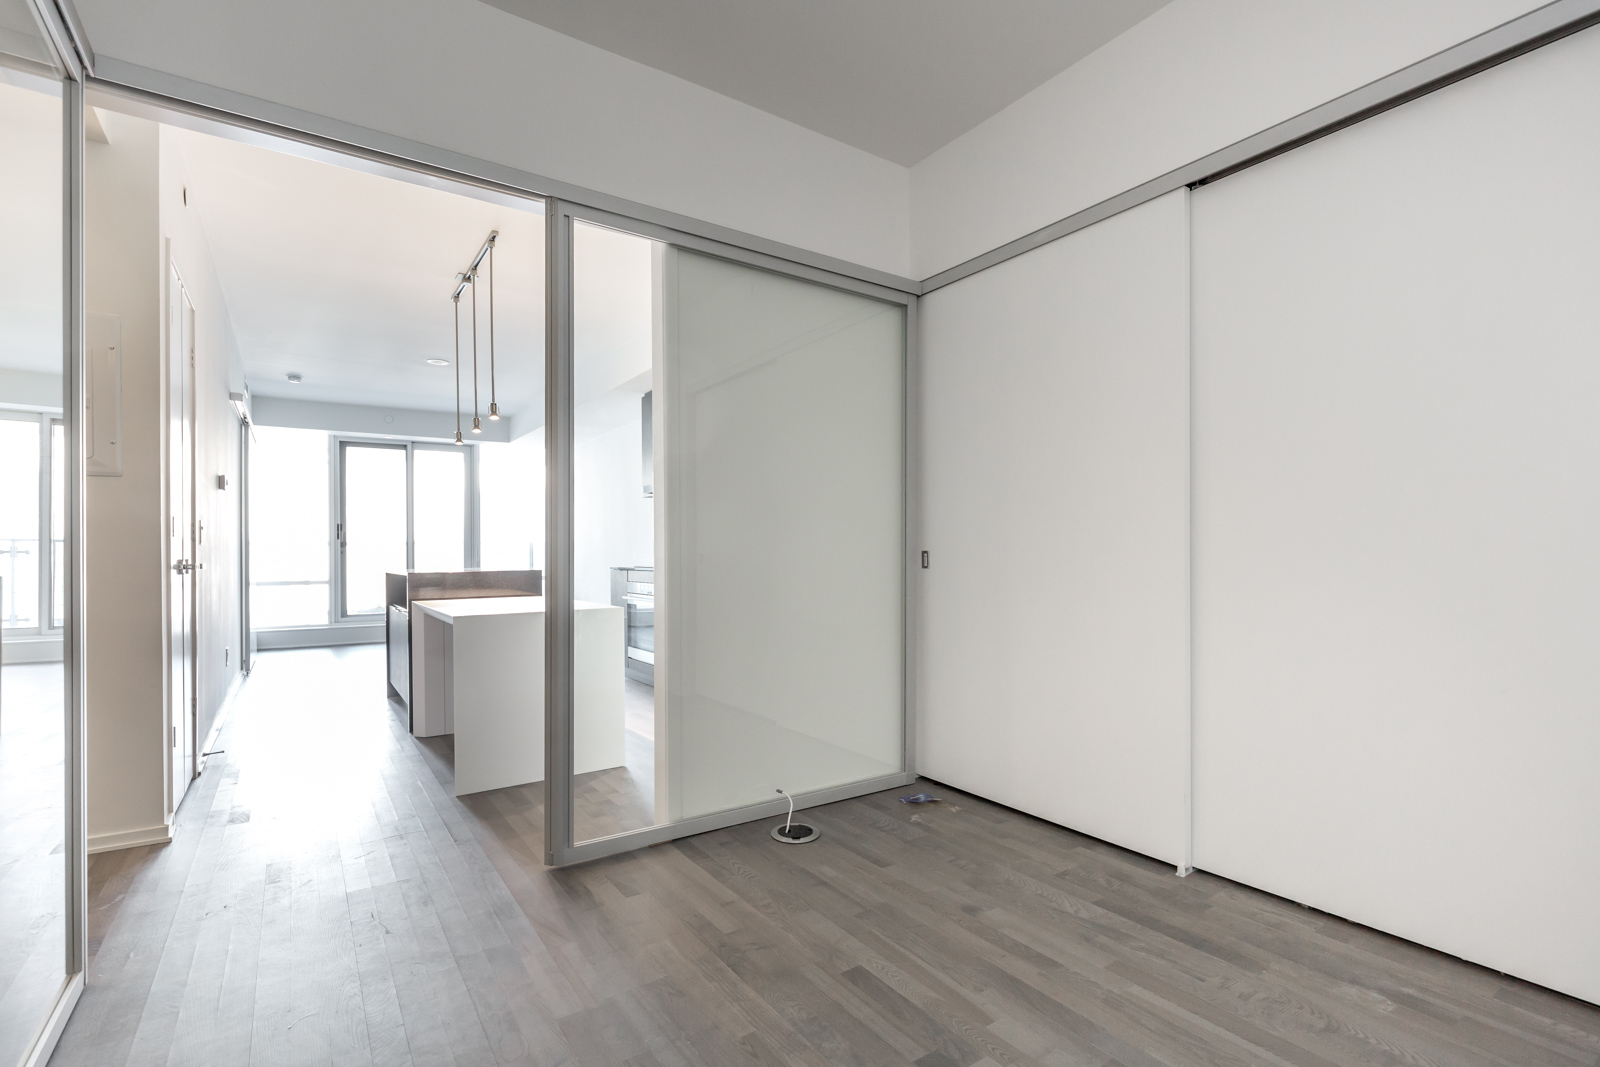 1 Bloor's open concept design